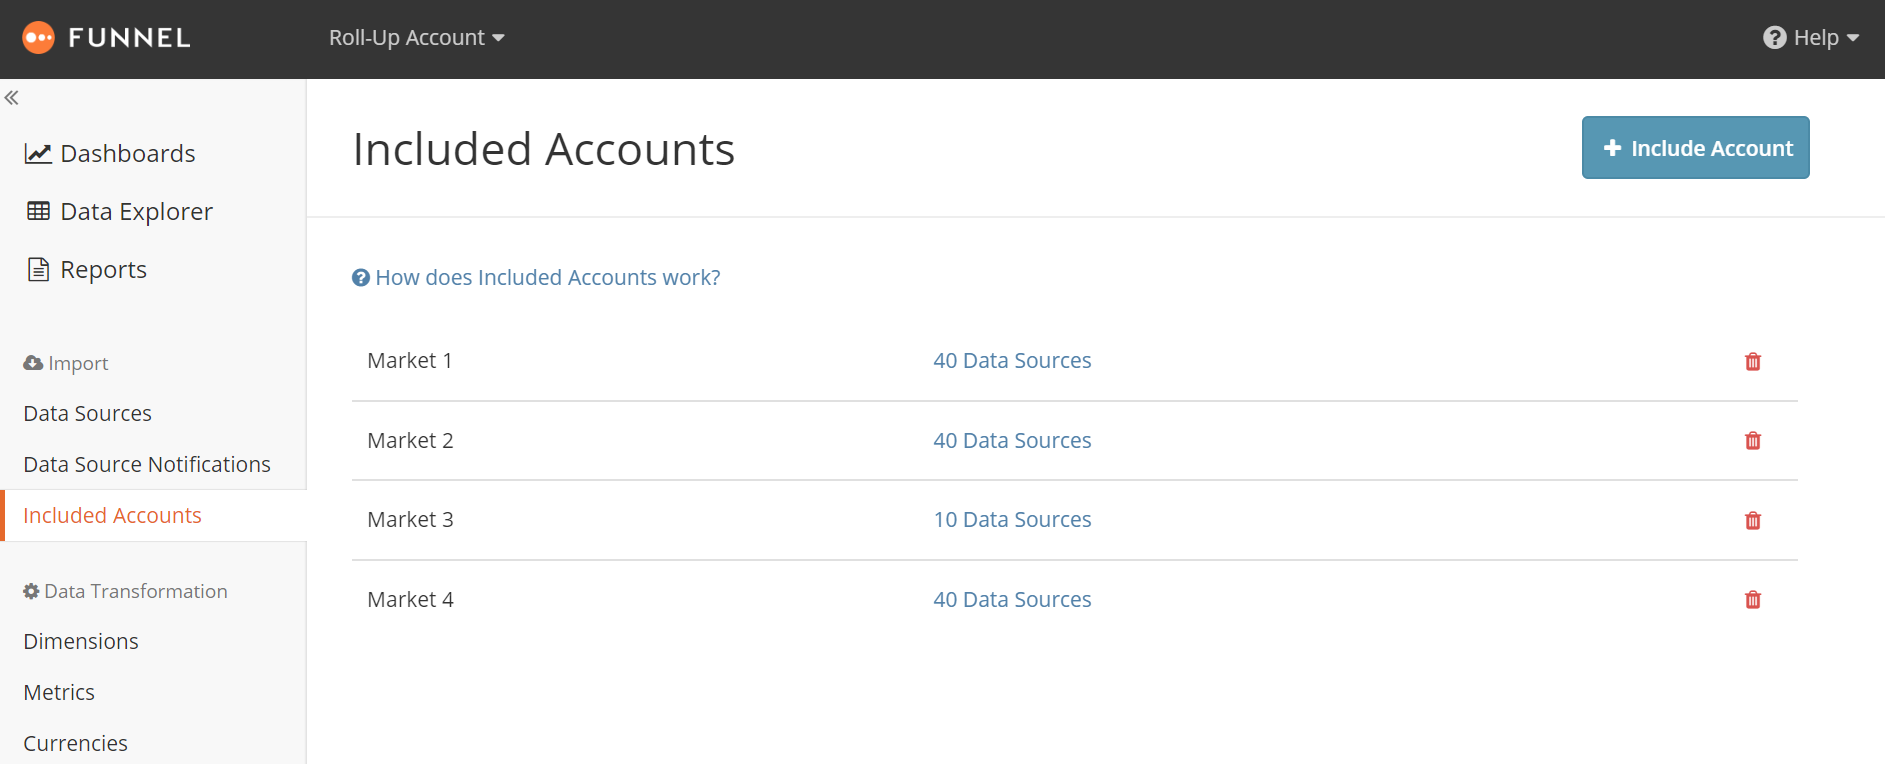 Included accounts section - Market